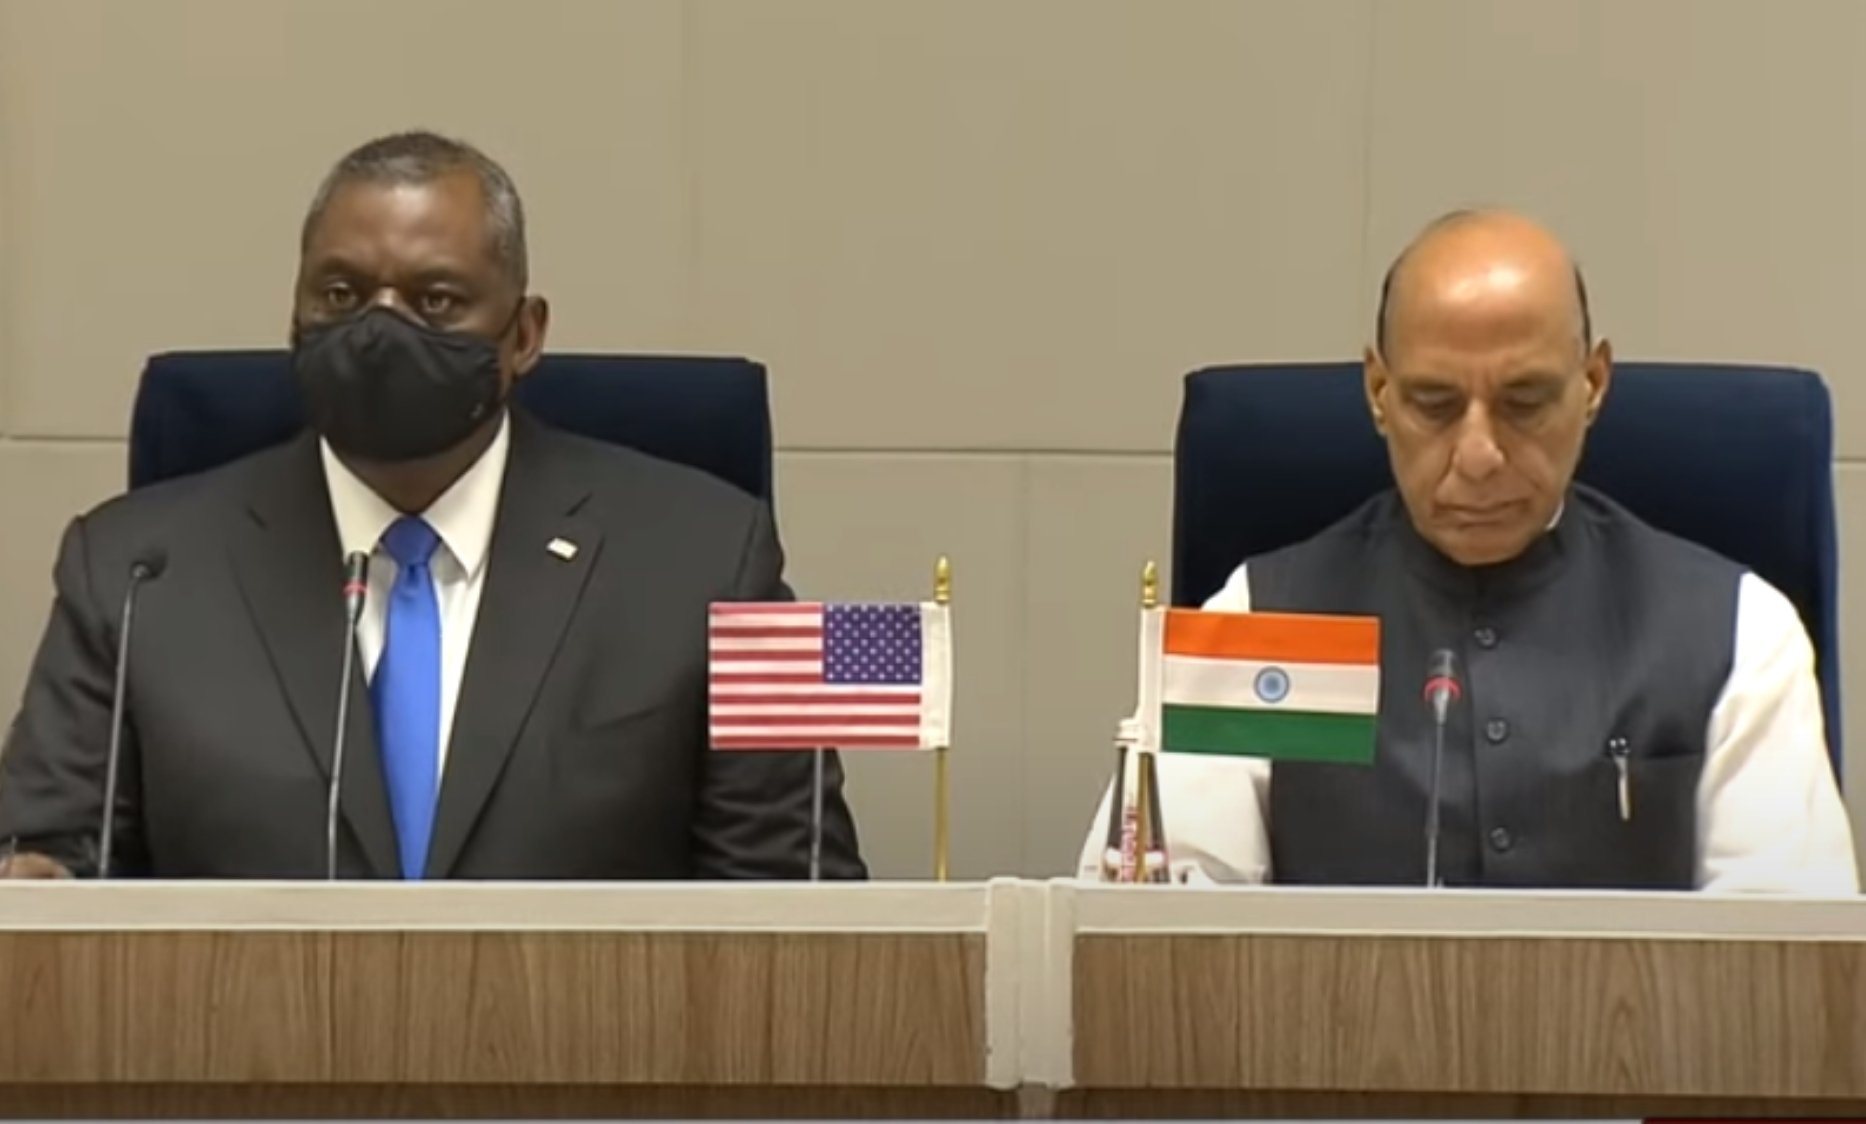 """US says """"Deteriorating Situation of Democracy"""" in India or Is It About Weapons Business?"""